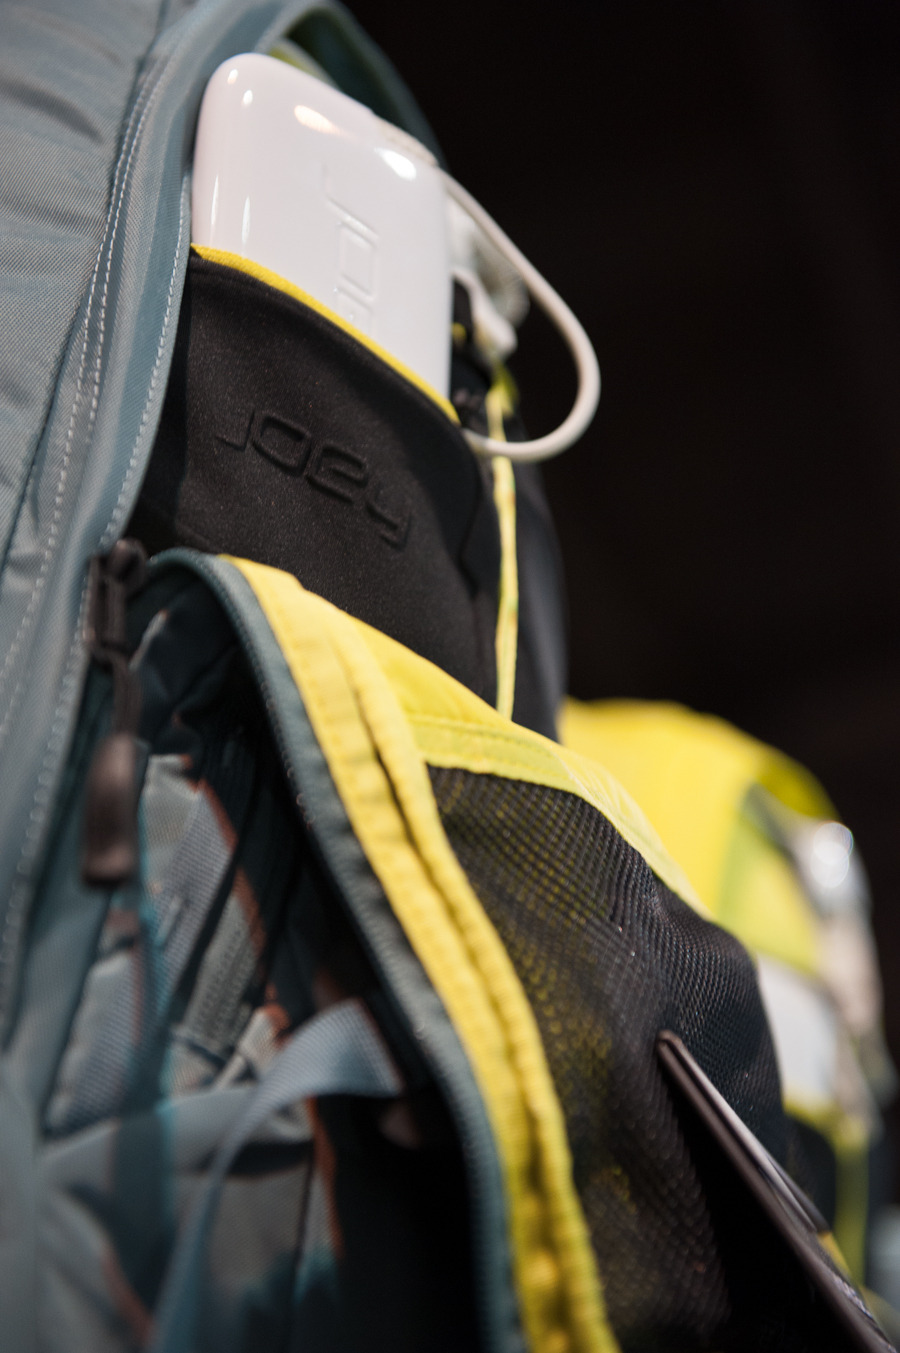 The Router Charged Day Pack from The North Face holds 2.5 charges for your Smartphone. The pack, developed thanks to a partnership with Joey Systems, can charge batteries in addition to your phone.  - ©Ashleigh Miller Photography